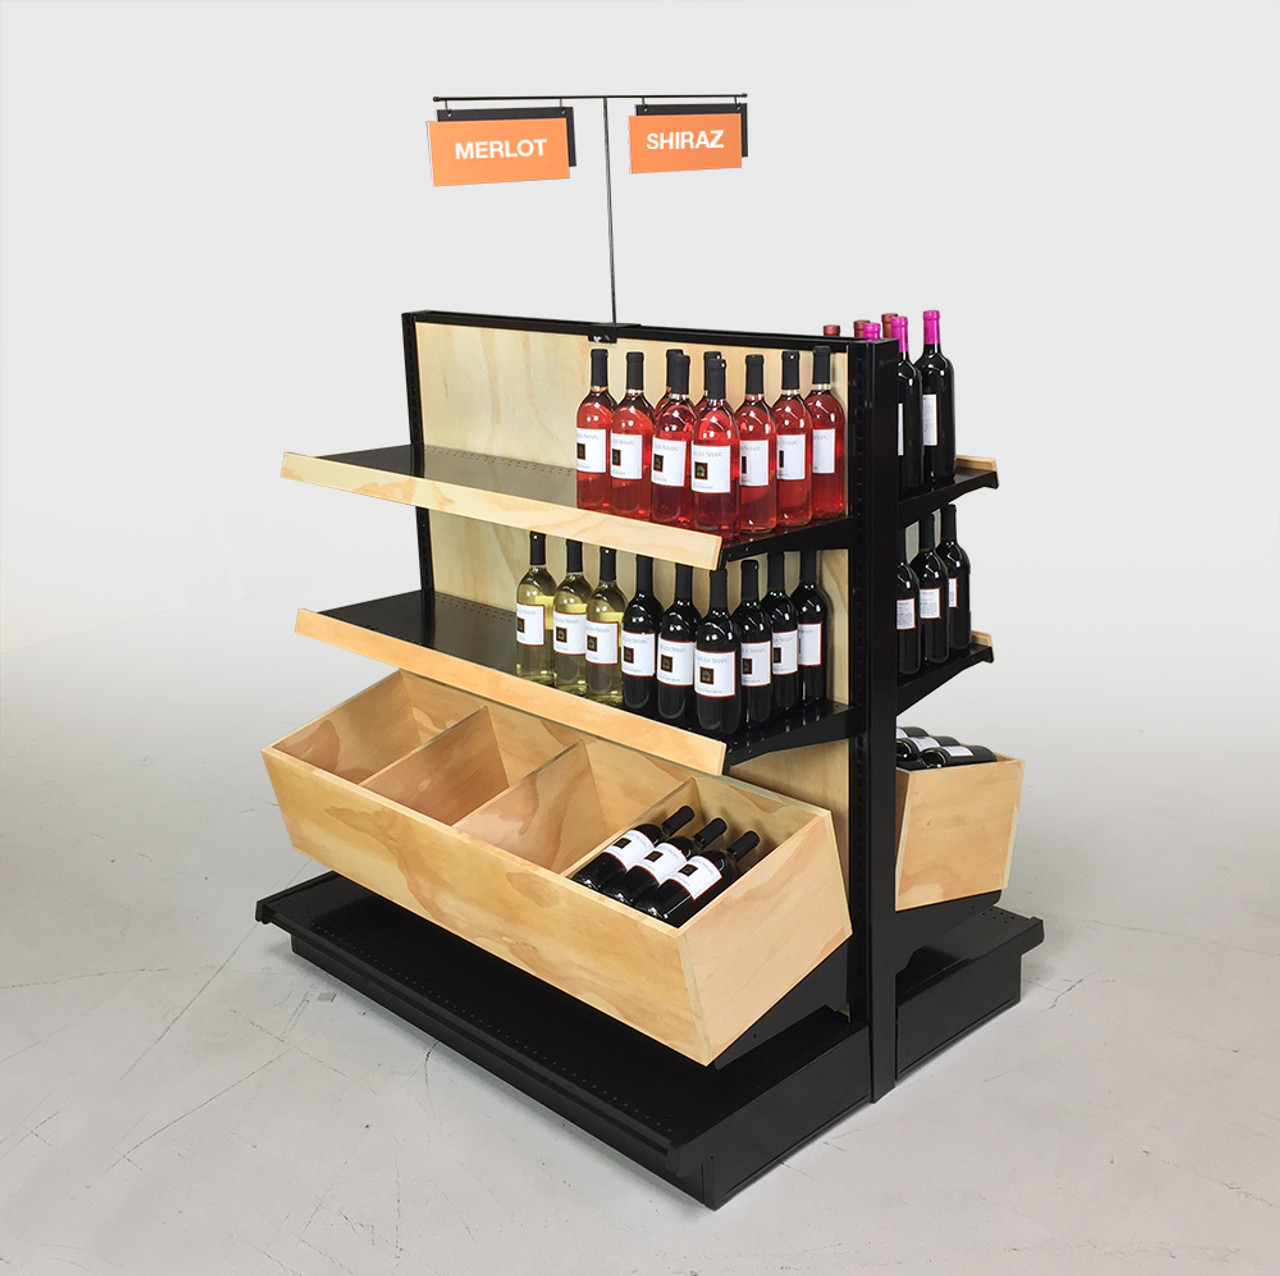 Wooden wine case Red Wine Wall Wine Racks For Stores Dgs Retail Liquor Store Shelving Wood Commercial Wine Racks Dgs Retail